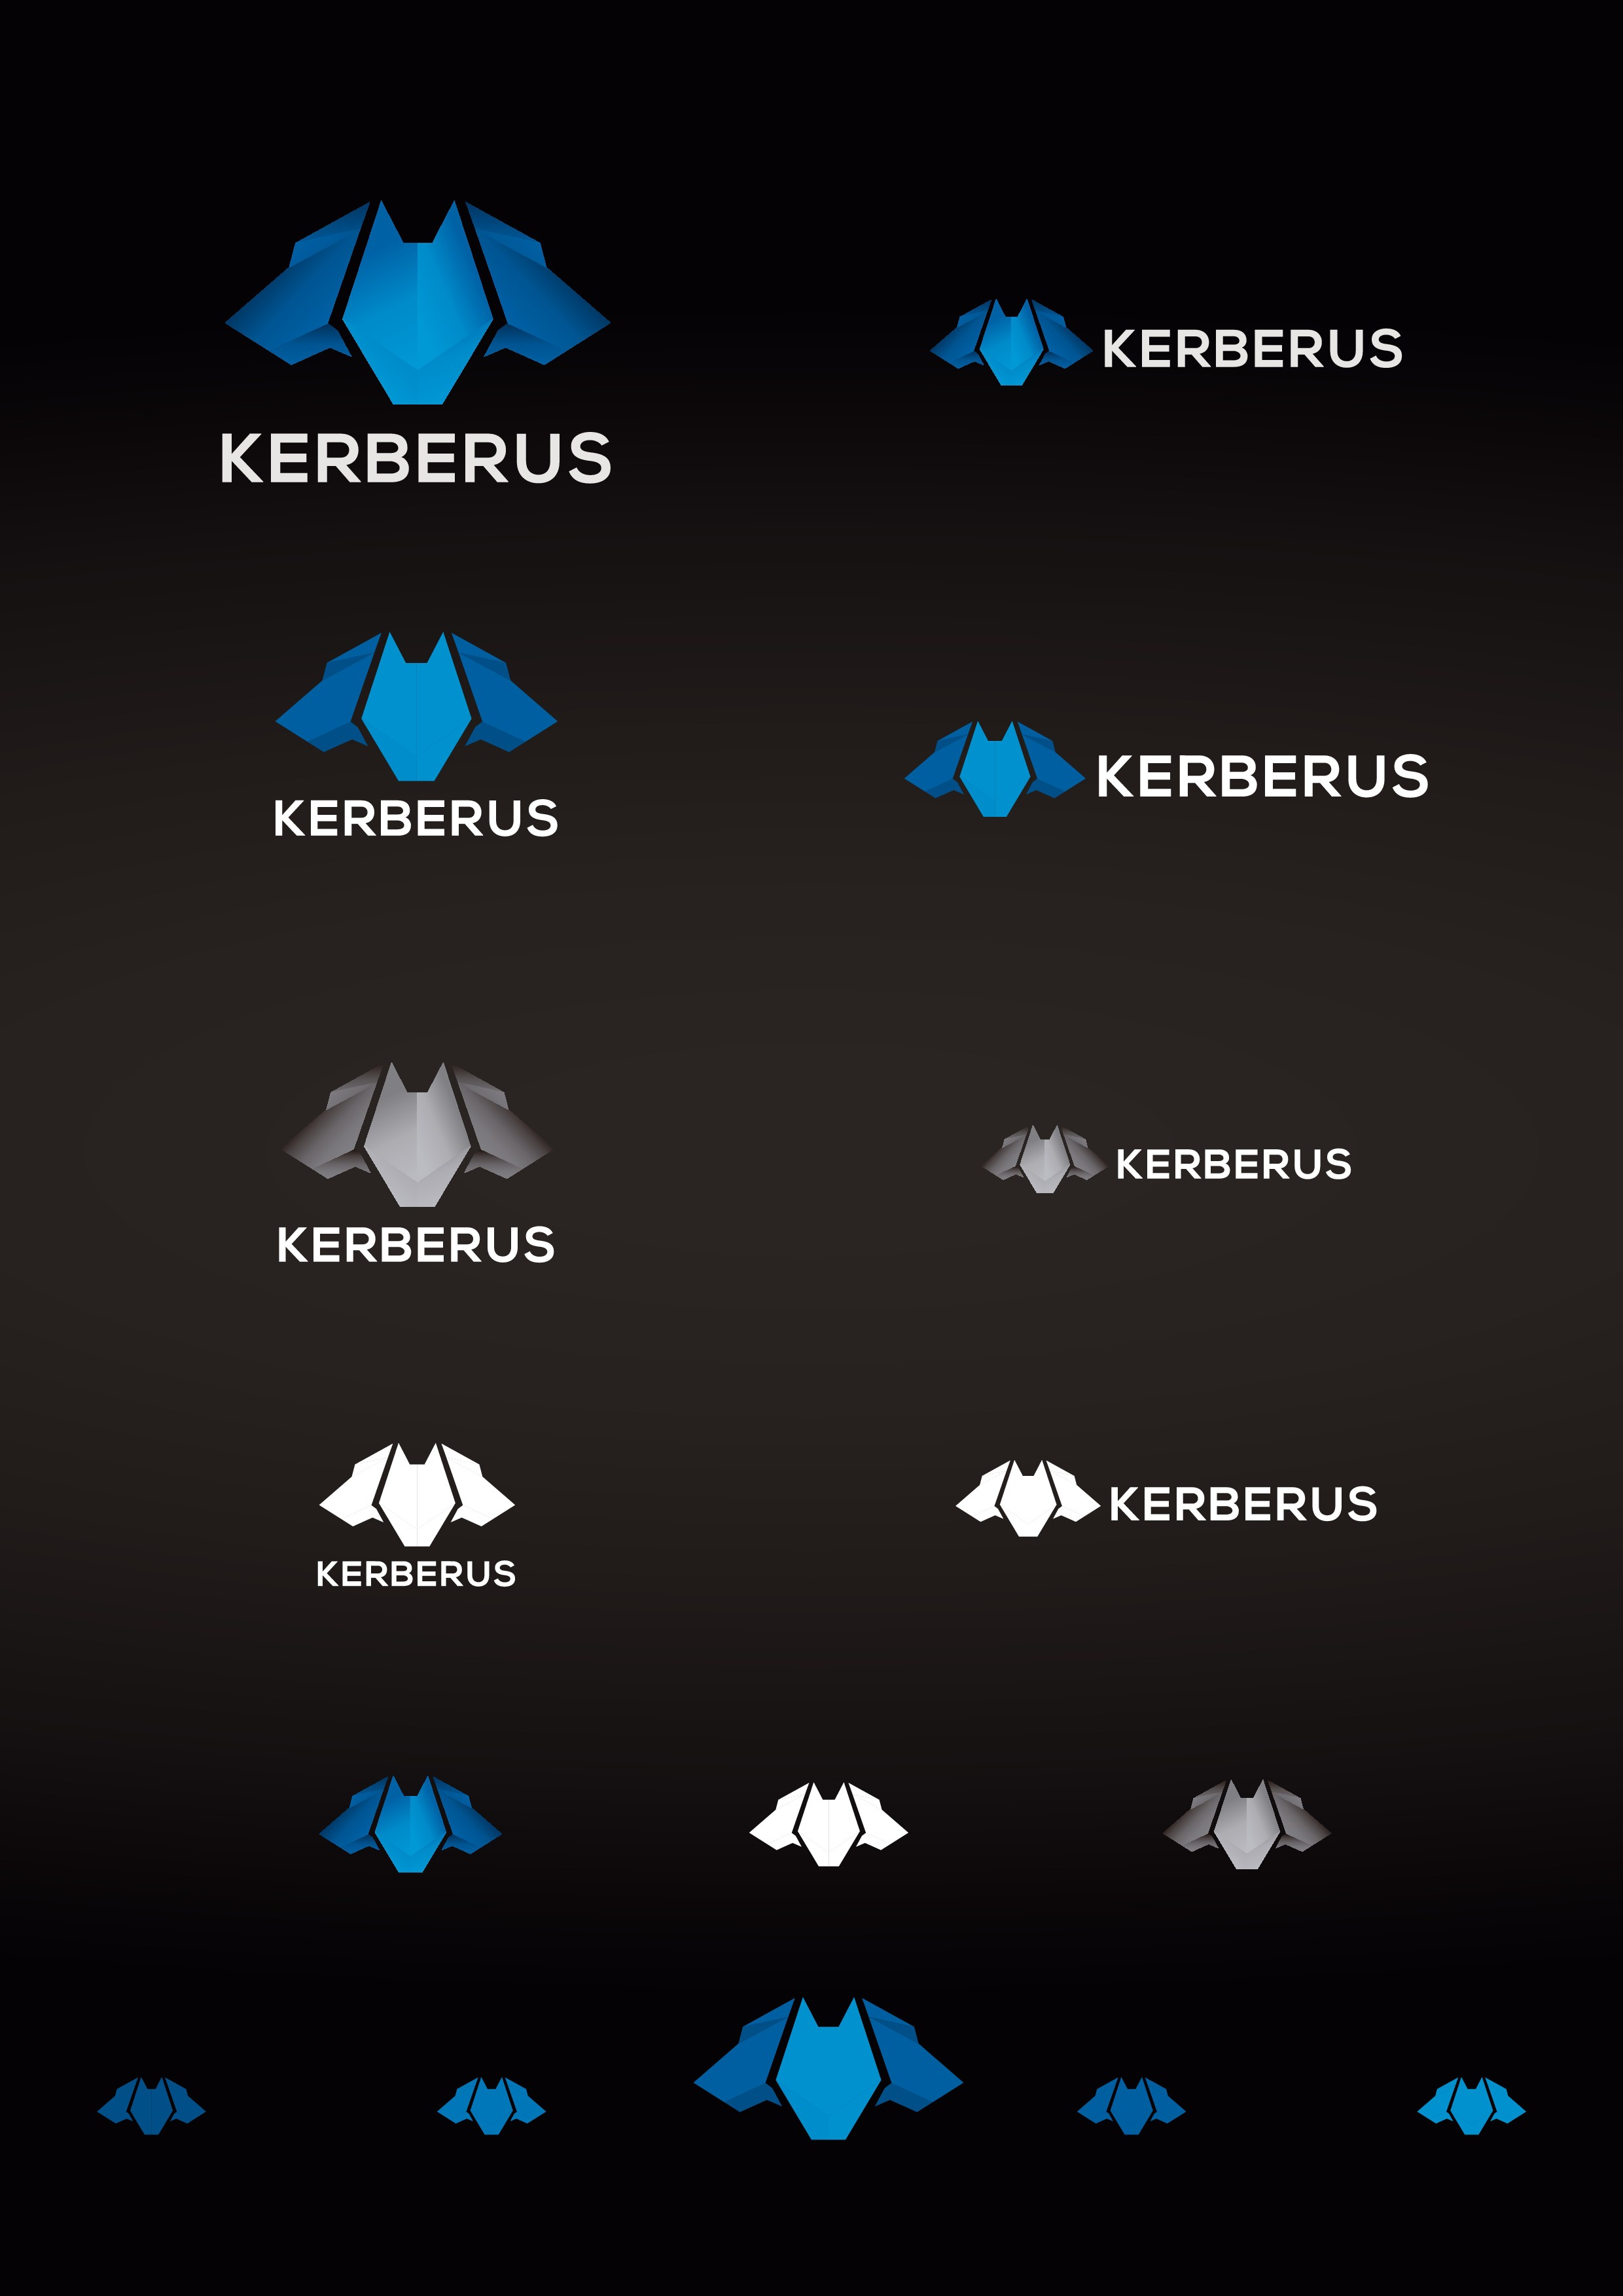 Create a product logo + website for Kerberus security system